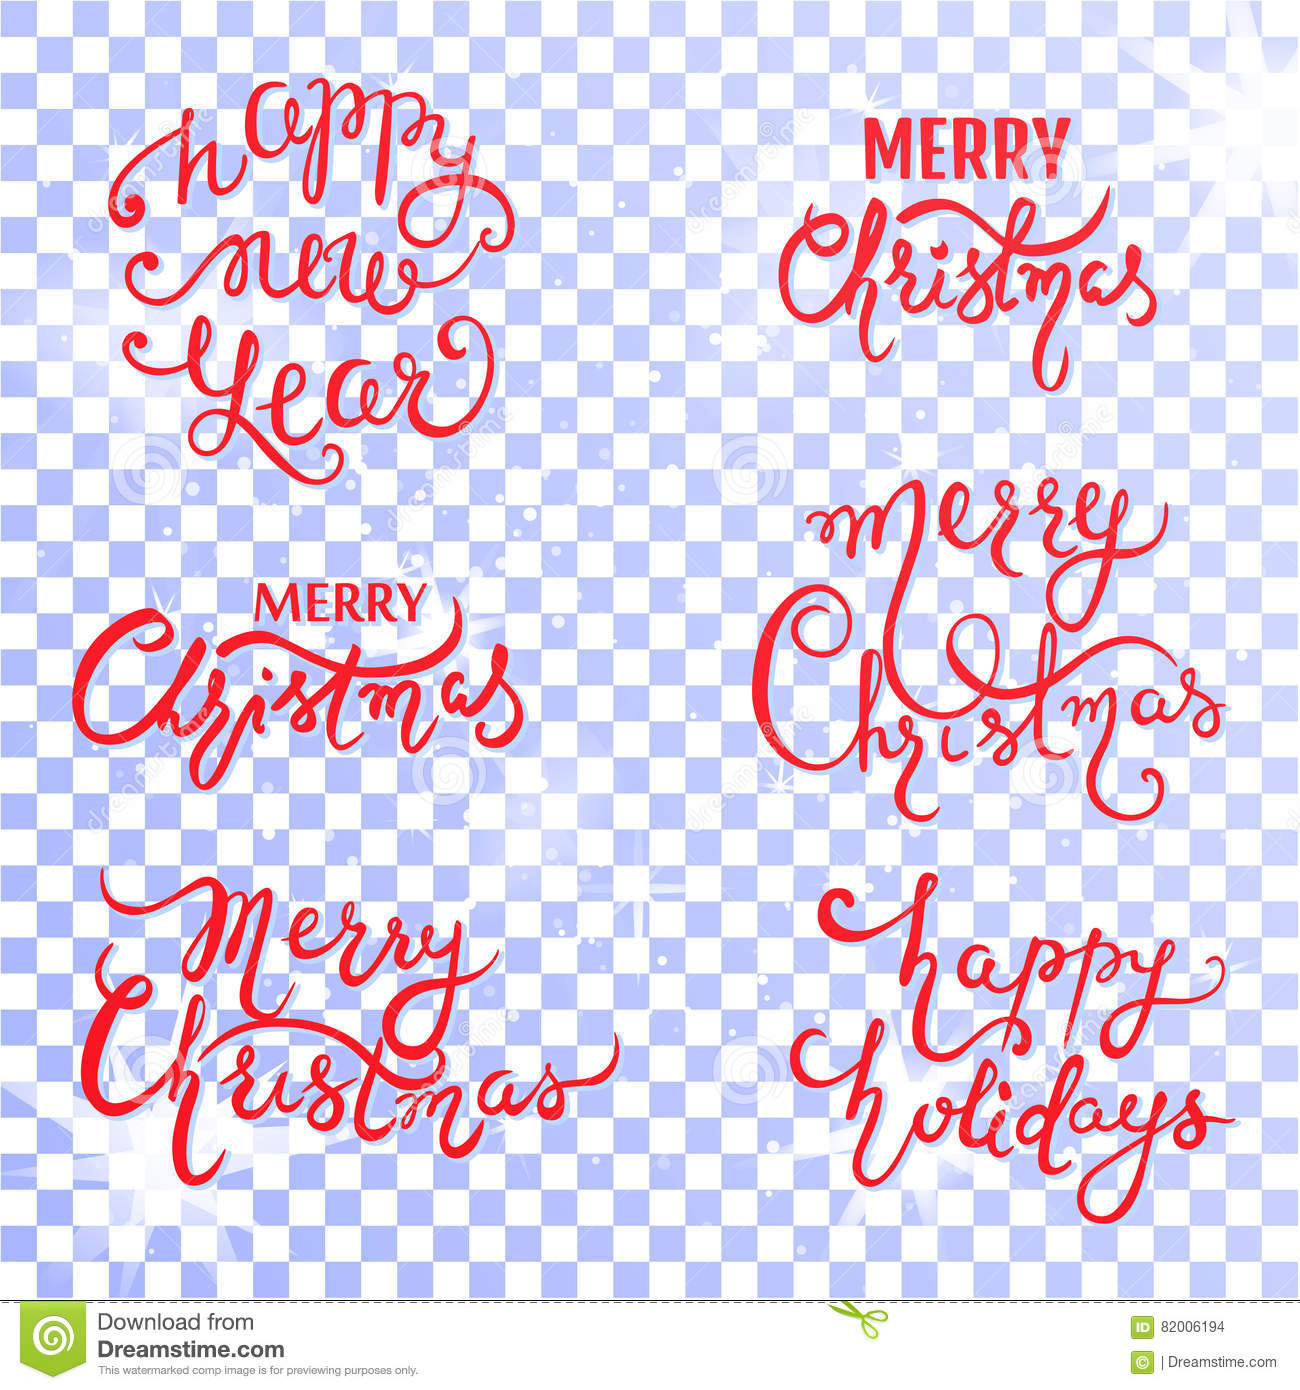 Merry Christmas No Background.Set With Xmas Inscription On A Transparent Background Stock